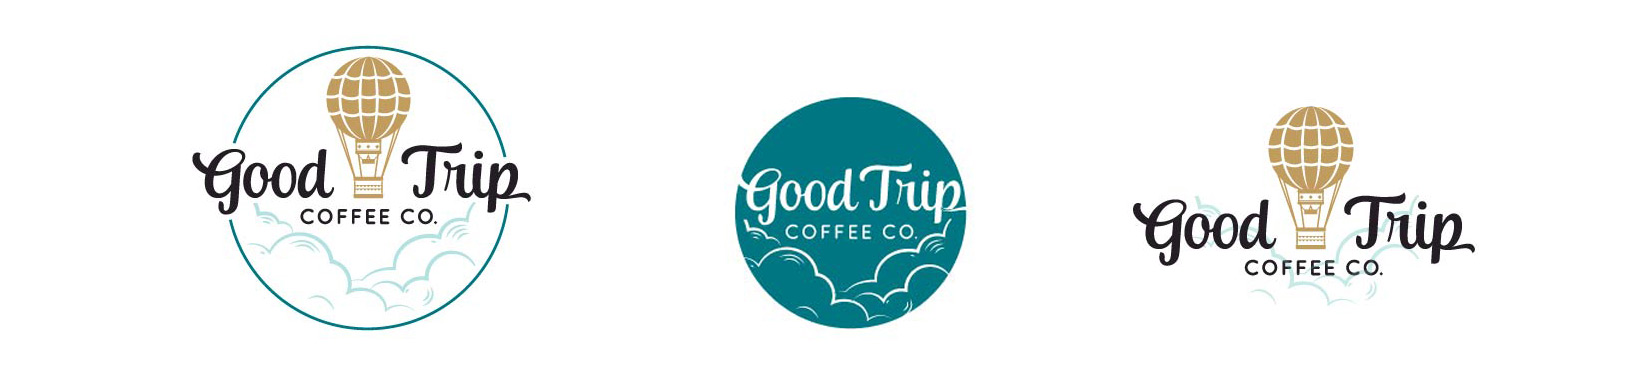 Good Trip Coffee Co. Logo | Circle Turquoise Hot Air Balloon Logo Design with Clouds Illustration with Submark and Alternative Layout